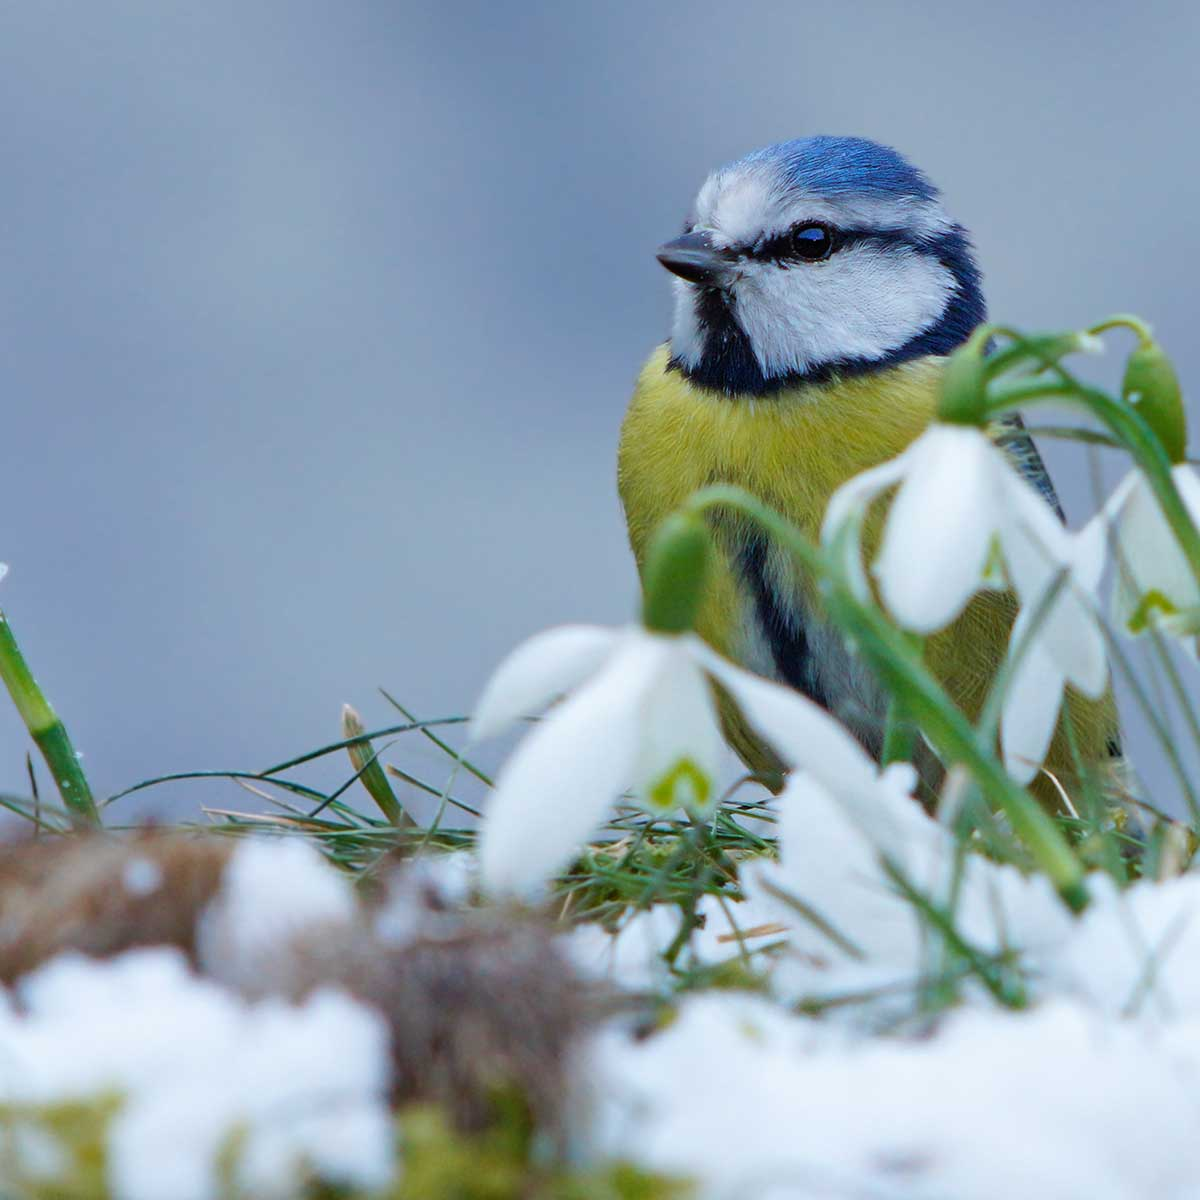 Blue Tit bird next to a snowdrop at Garden House Residential Care Home